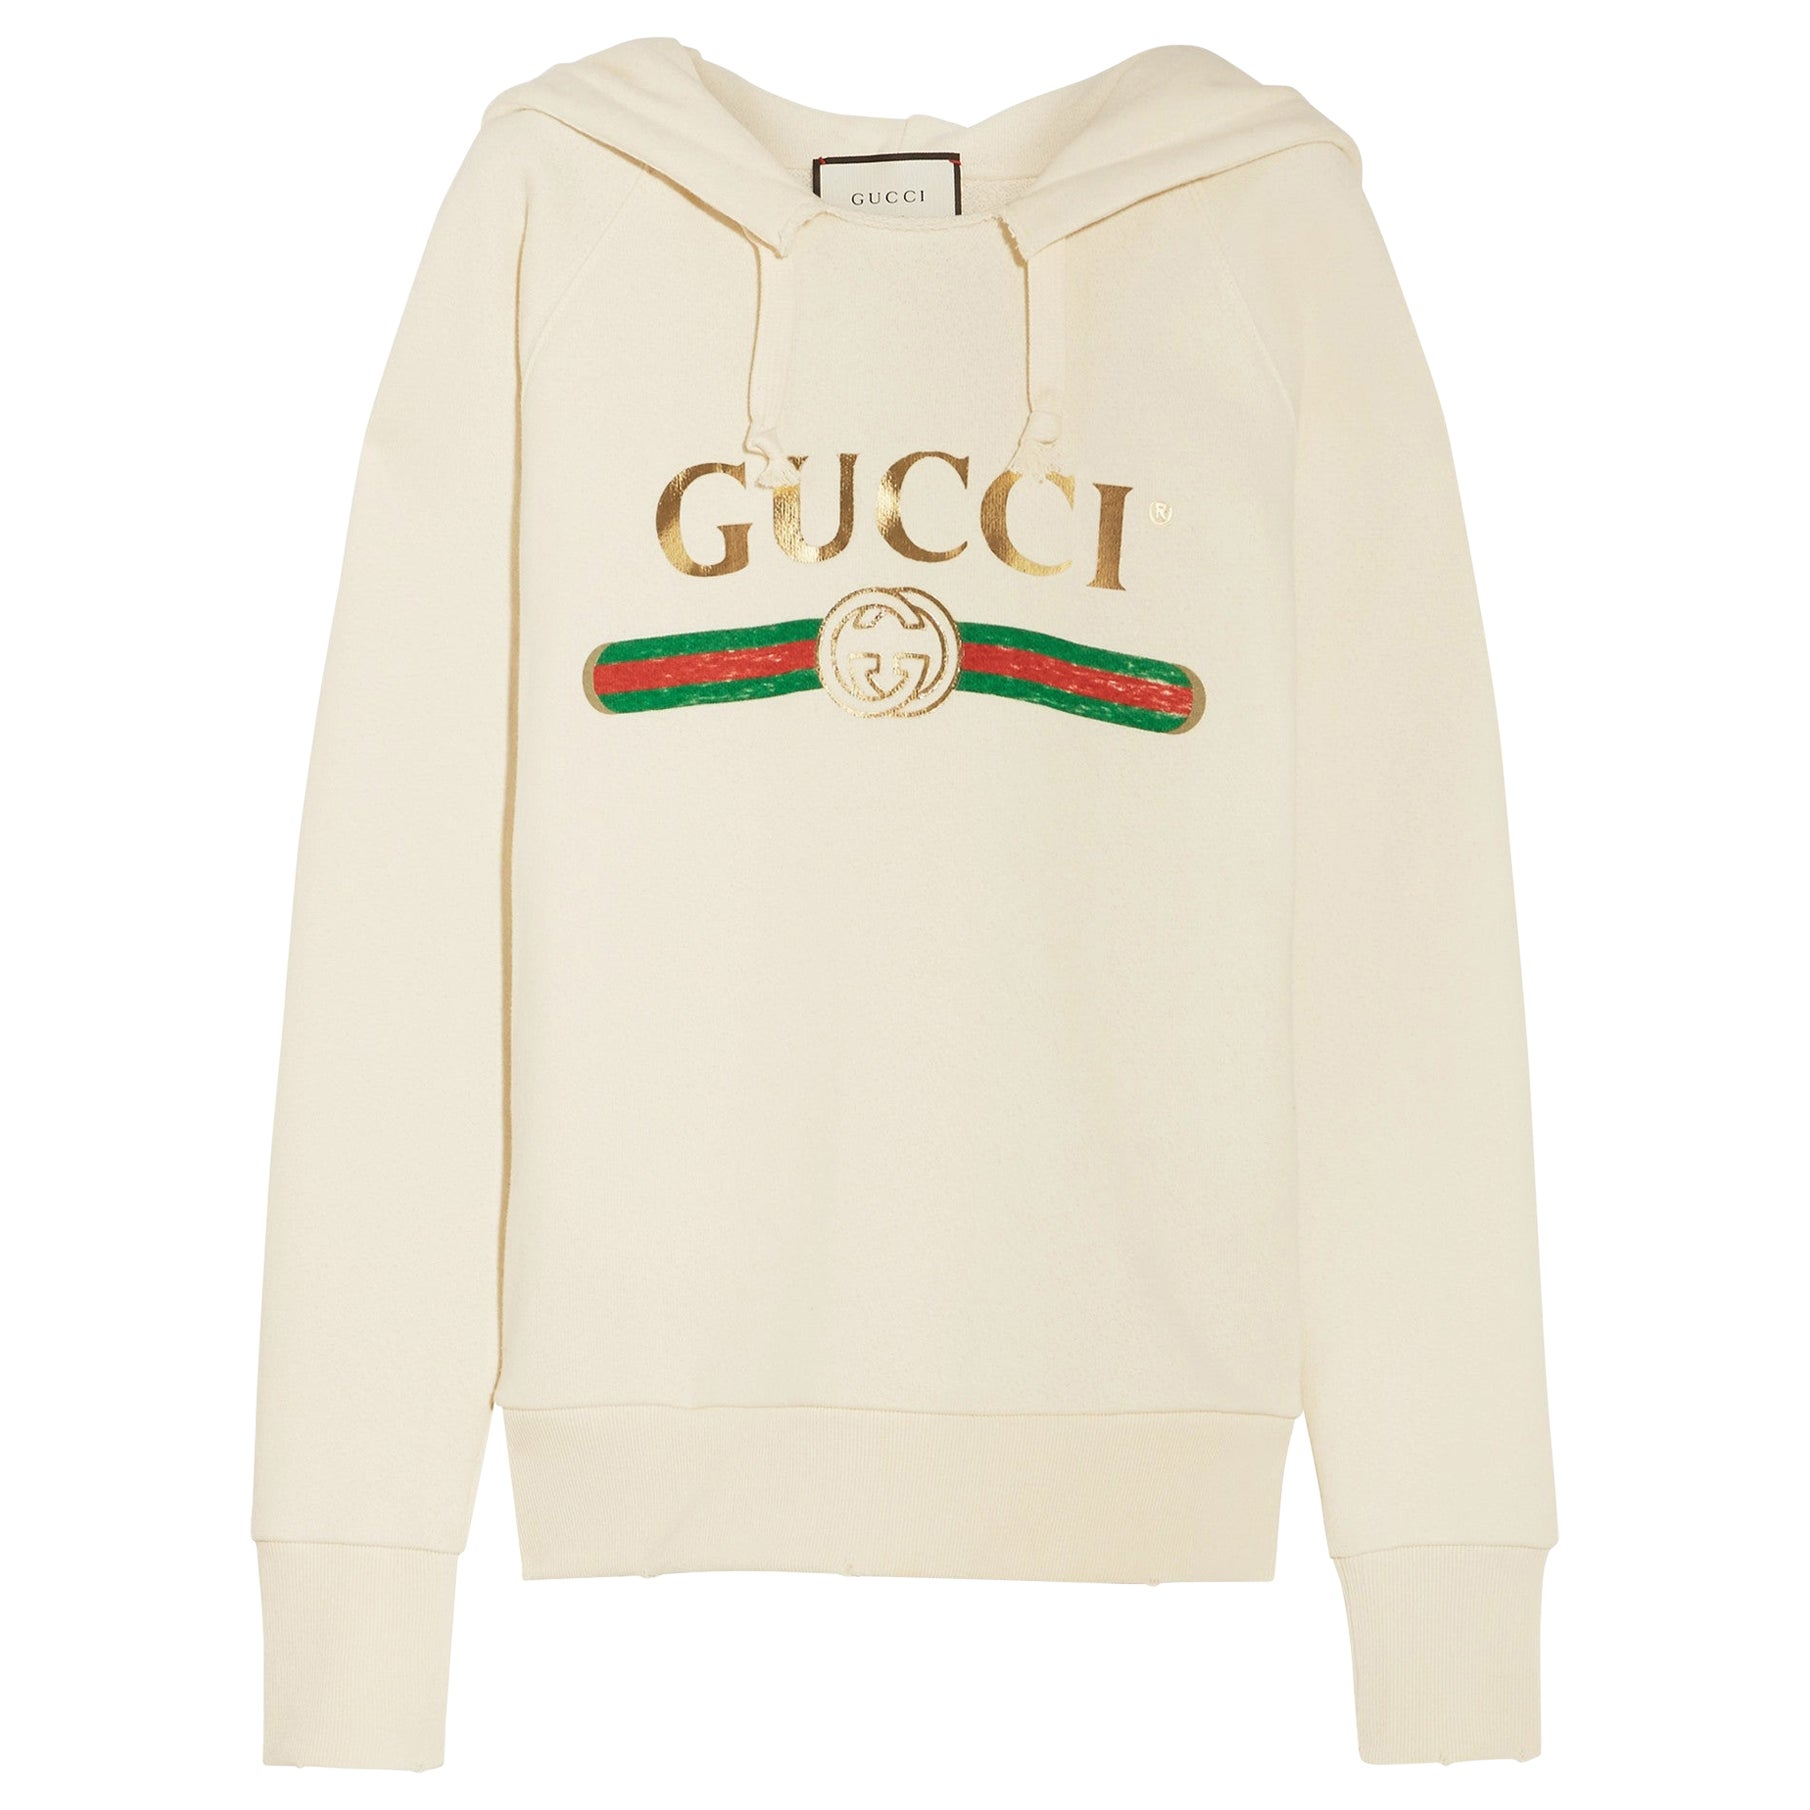 GUCCI white cotton BLIND FOR LOVE EMBROIDERED LOGO HODDIE Sweater XS